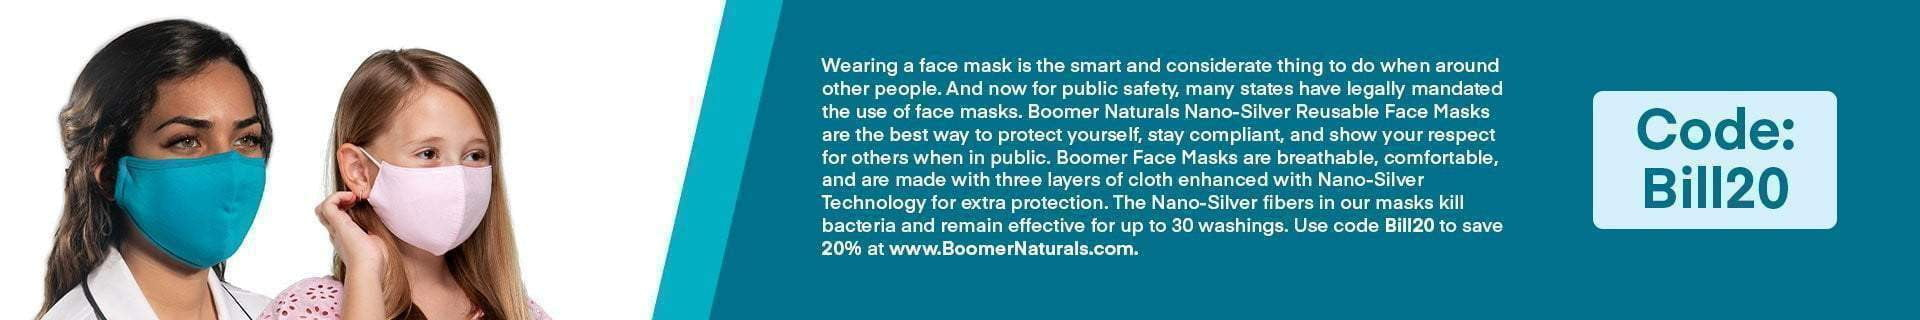 Bill O'Reilly: Boomer Nano-Silver Face Masks